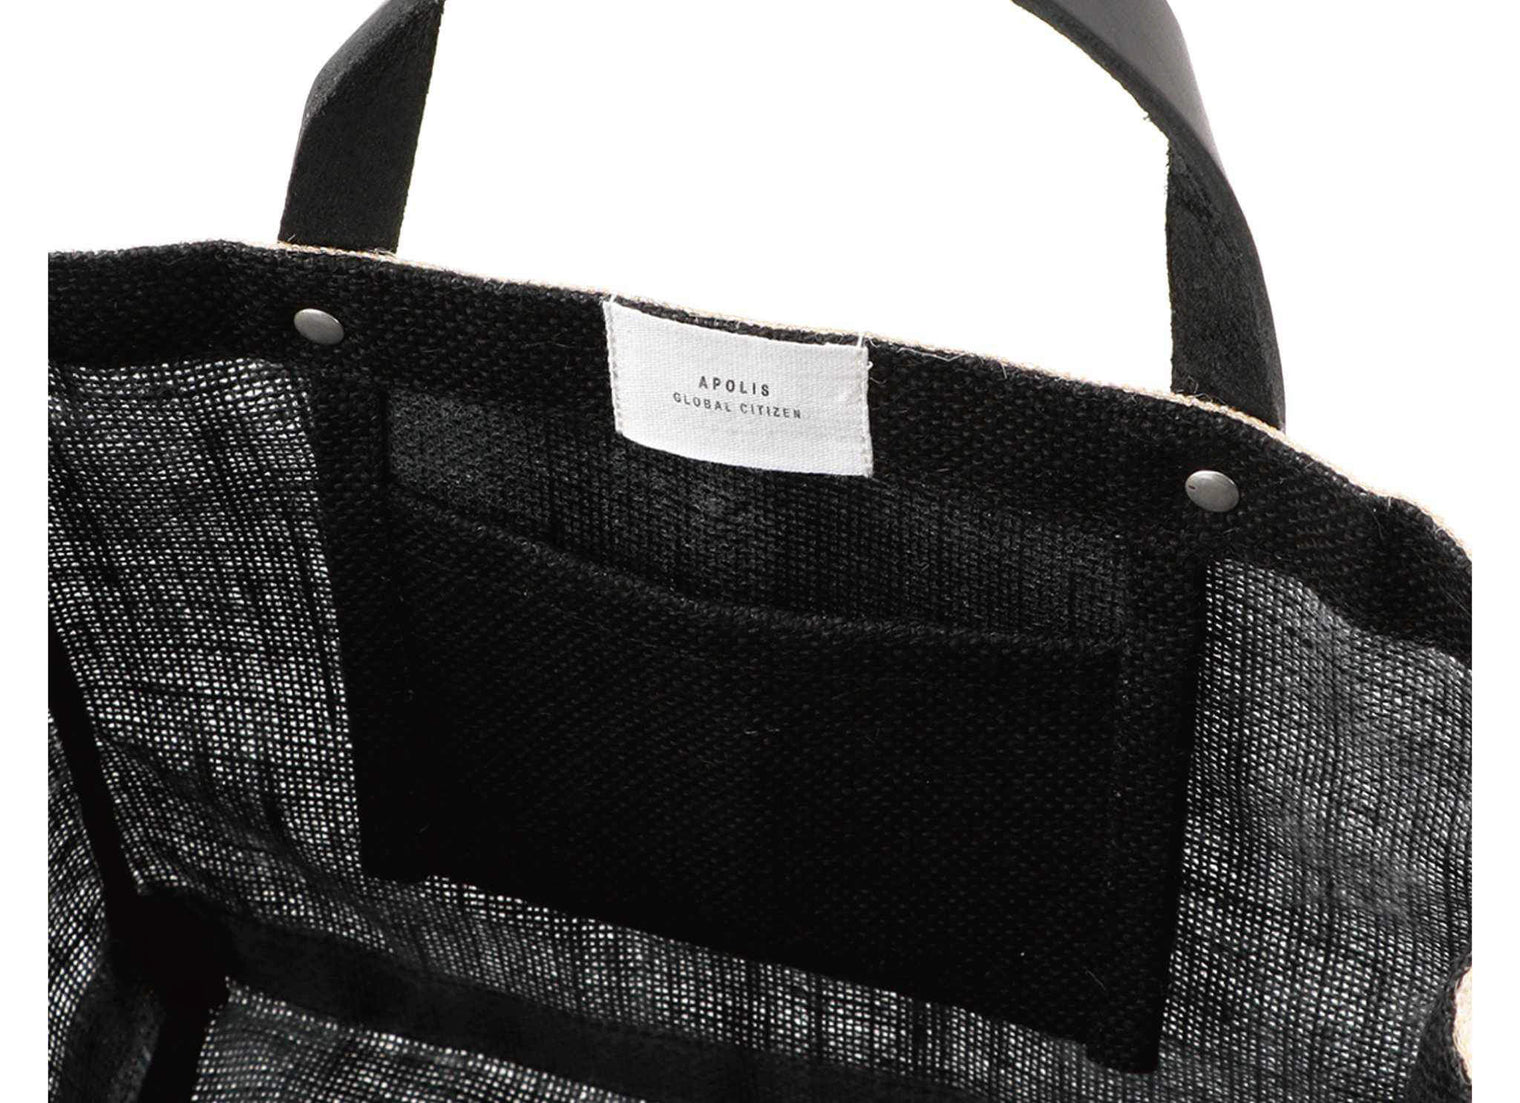 Petite Black Market Bag (Non Customized) for Baby2Baby®